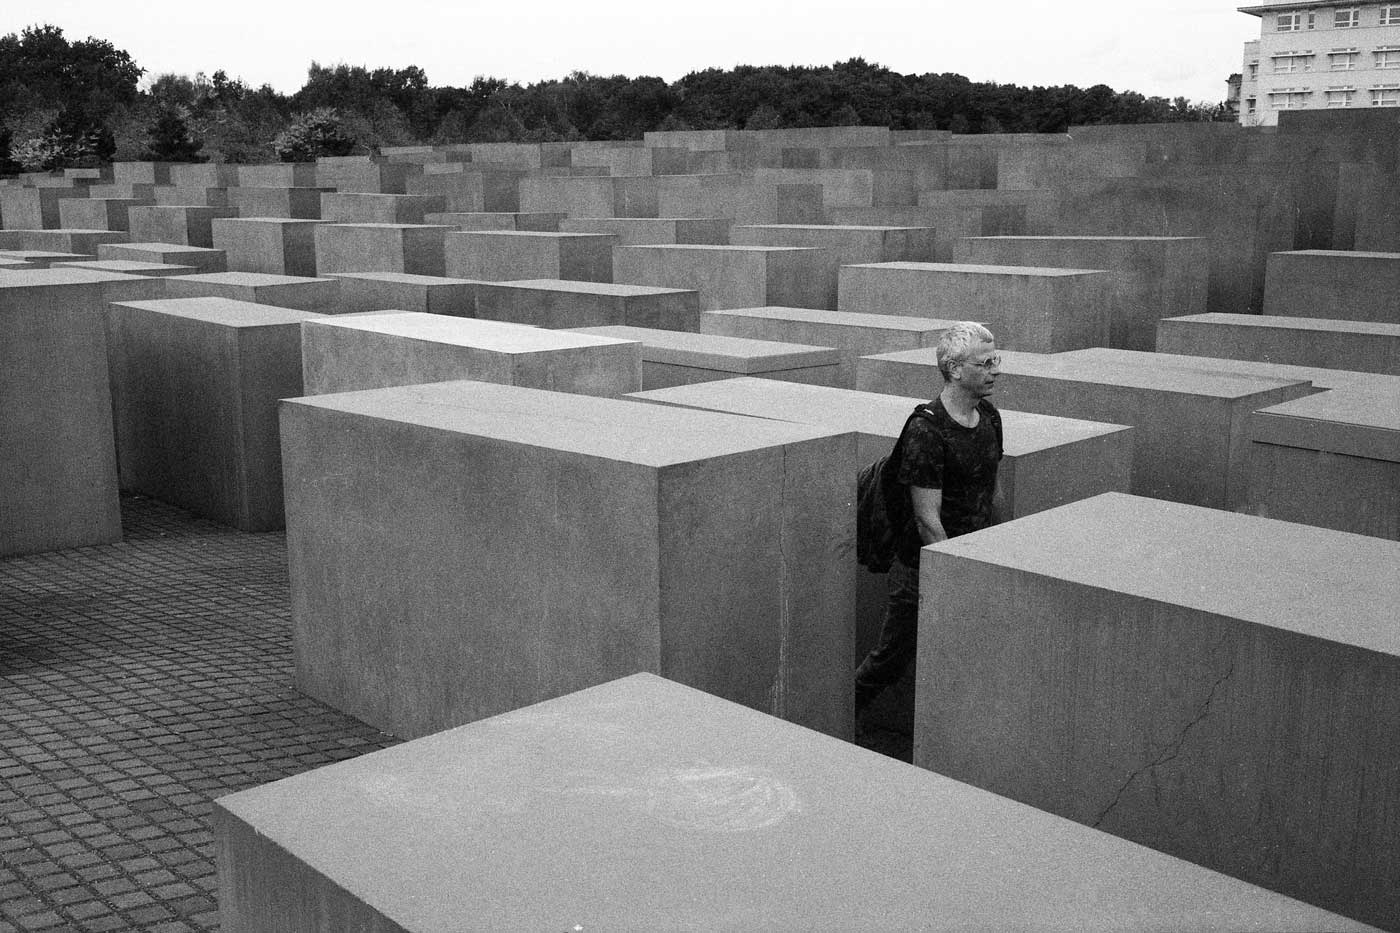 berlin-germany-2014-trip-travel-first-backpack-leica-m2-summicron-35mm-f2-v1-8elements-street-snap-kodak-double-x-5222-eastman-400-iso-12-holocaust